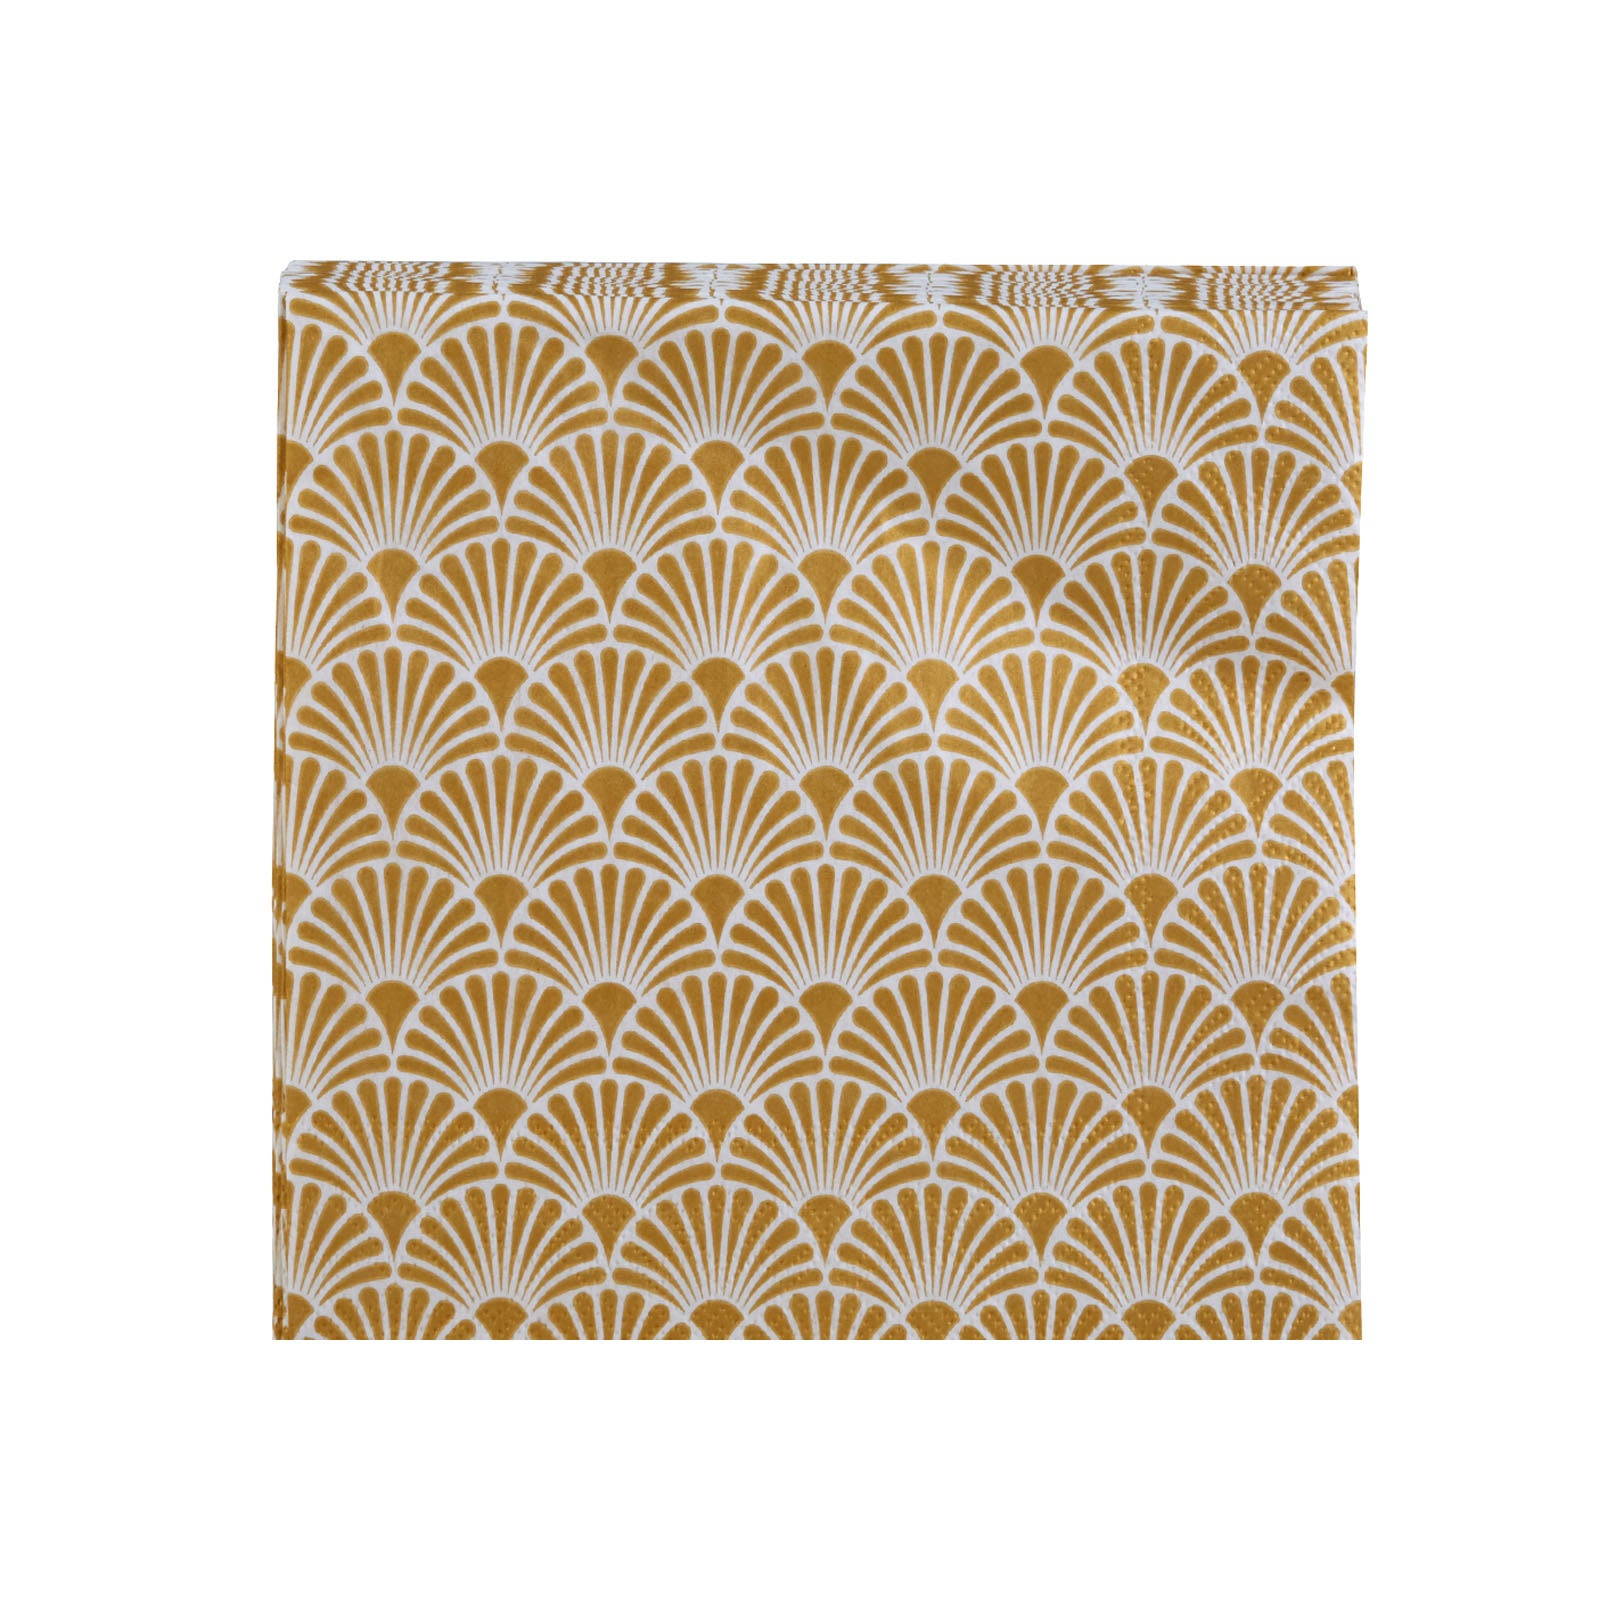 Karaca Art Deco Gold / White Napkin 153.19.01.1230